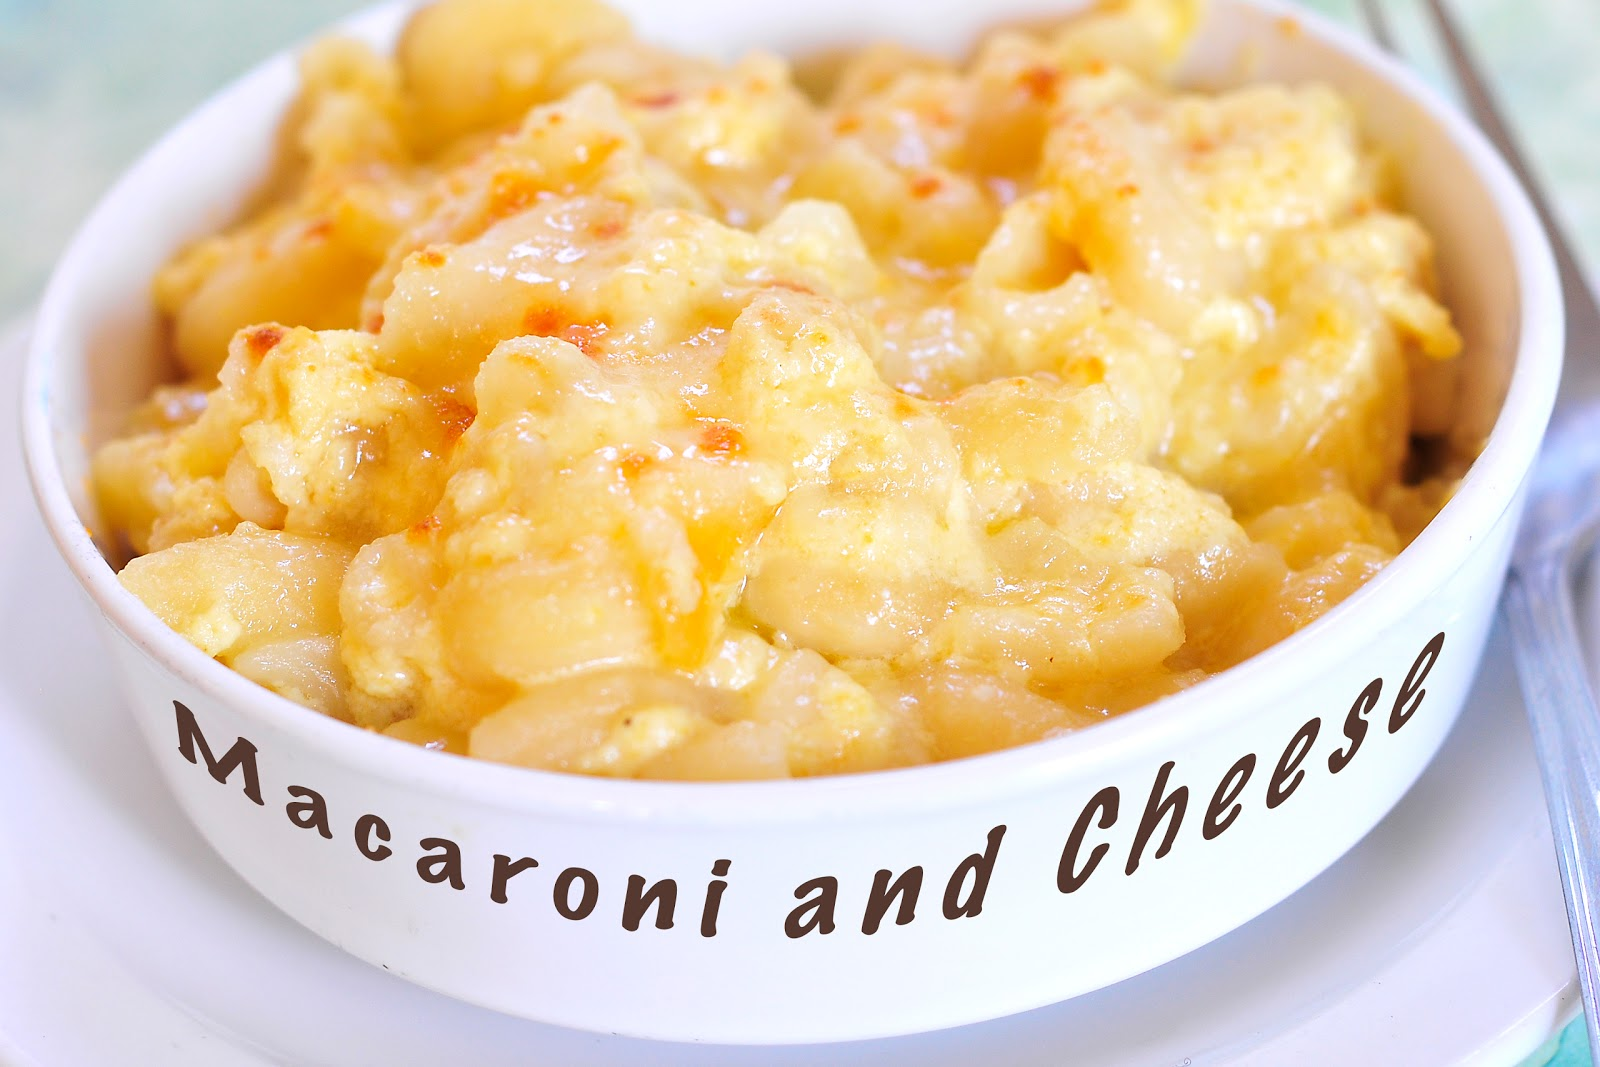 250. Slow Cooker Macaroni and Cheese